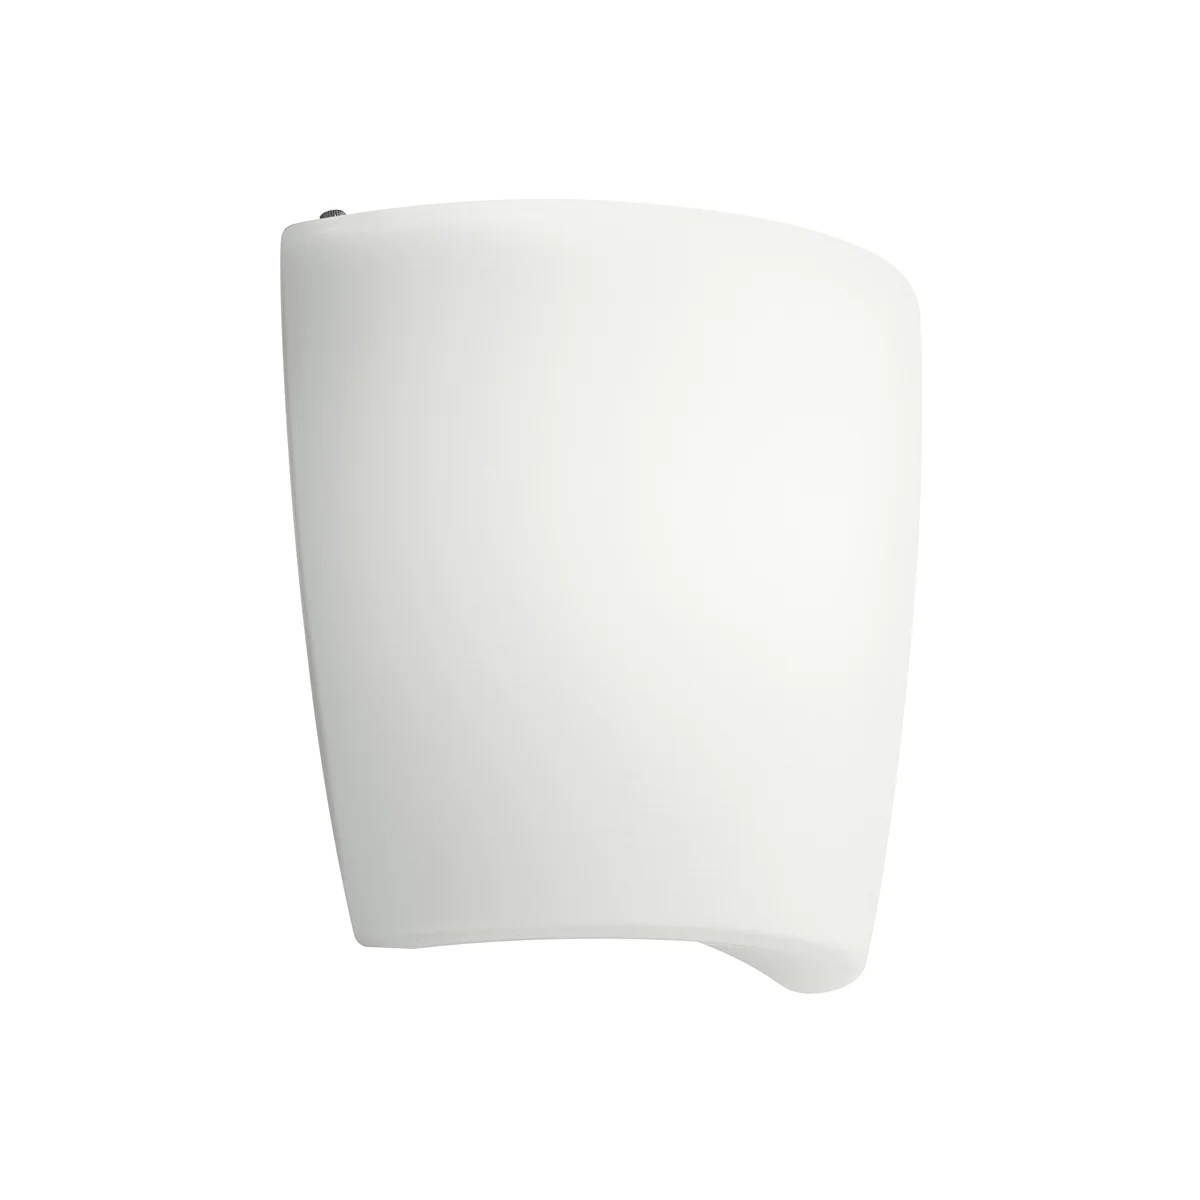 Kichler Fluorescent 1 Light Wall Sconce